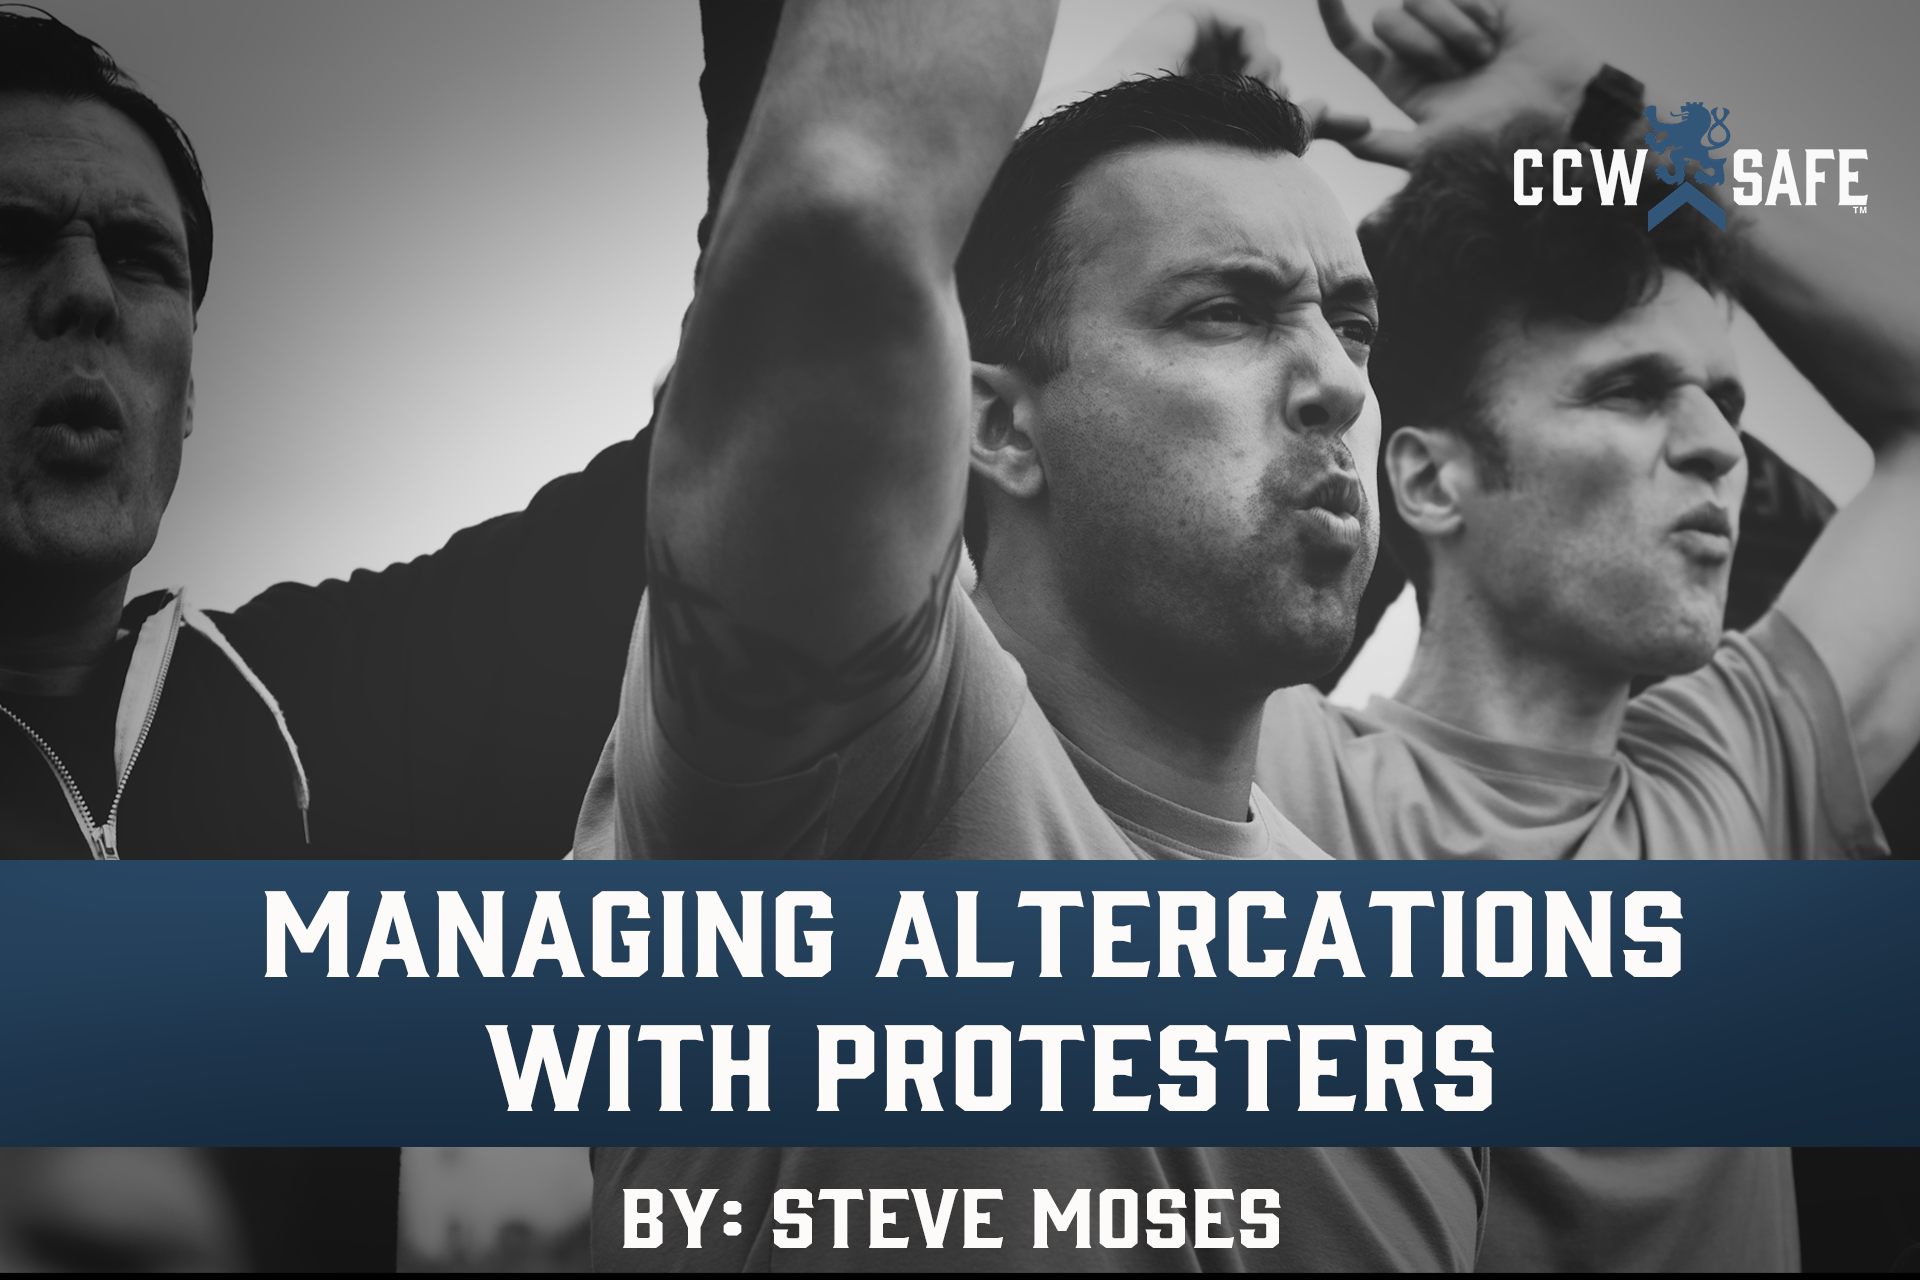 MANAGING ALTERCATIONS WITH PROTESTERS